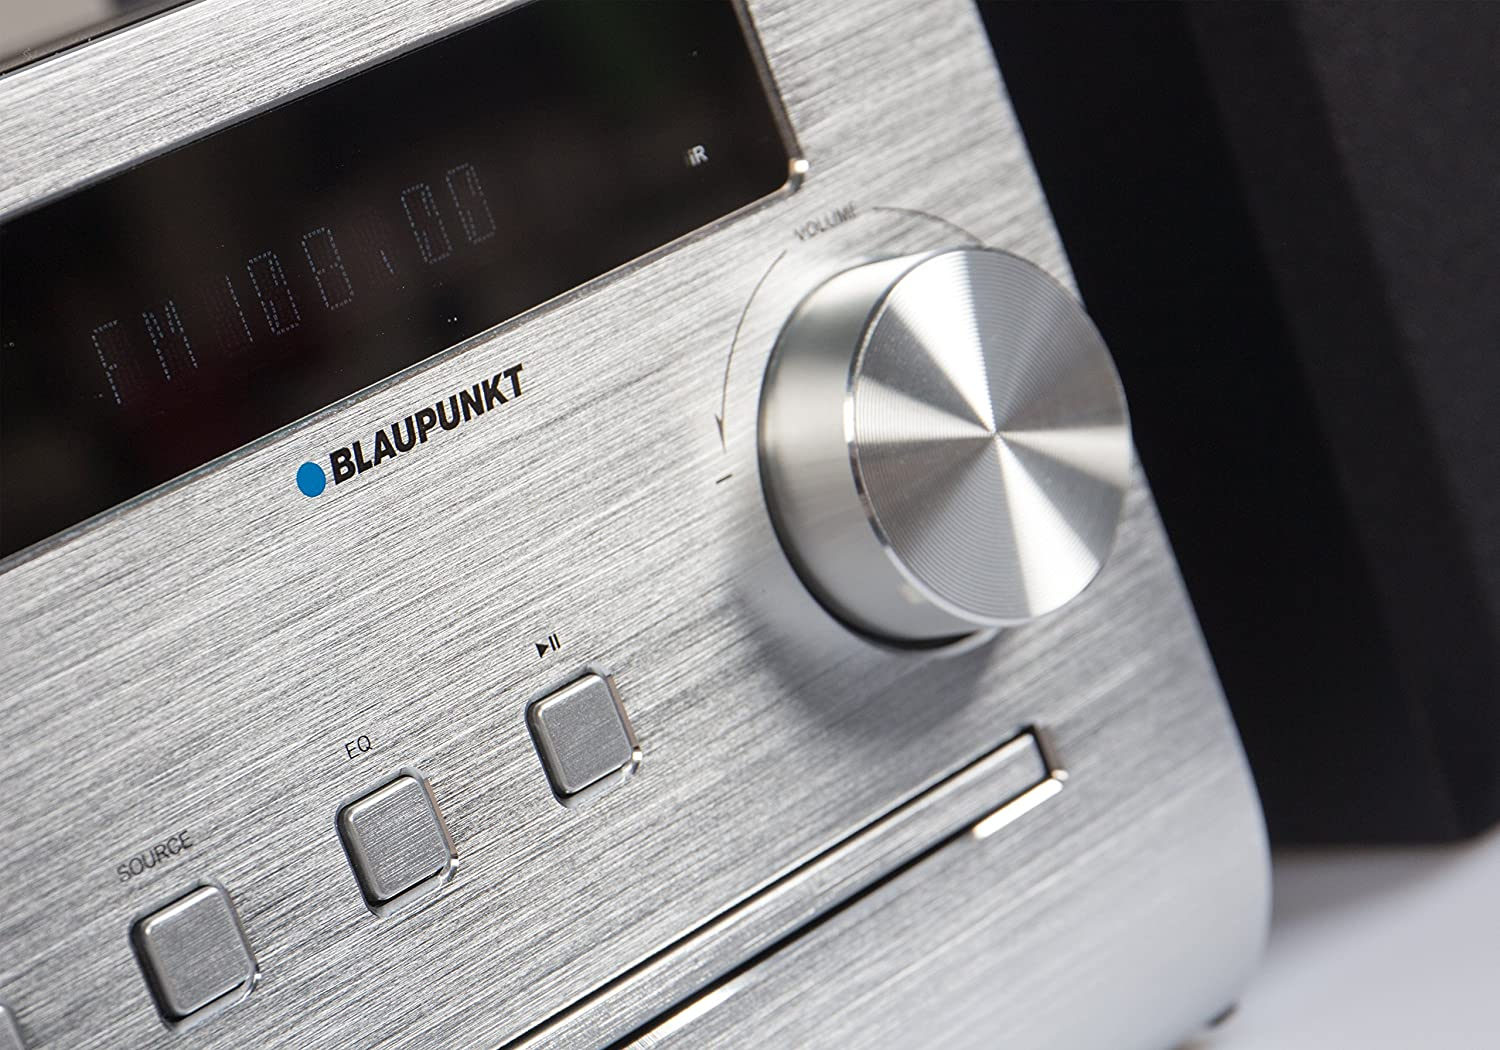 Blaupunkt mcd hifi mikroanlage cd mp player usb bluetooth